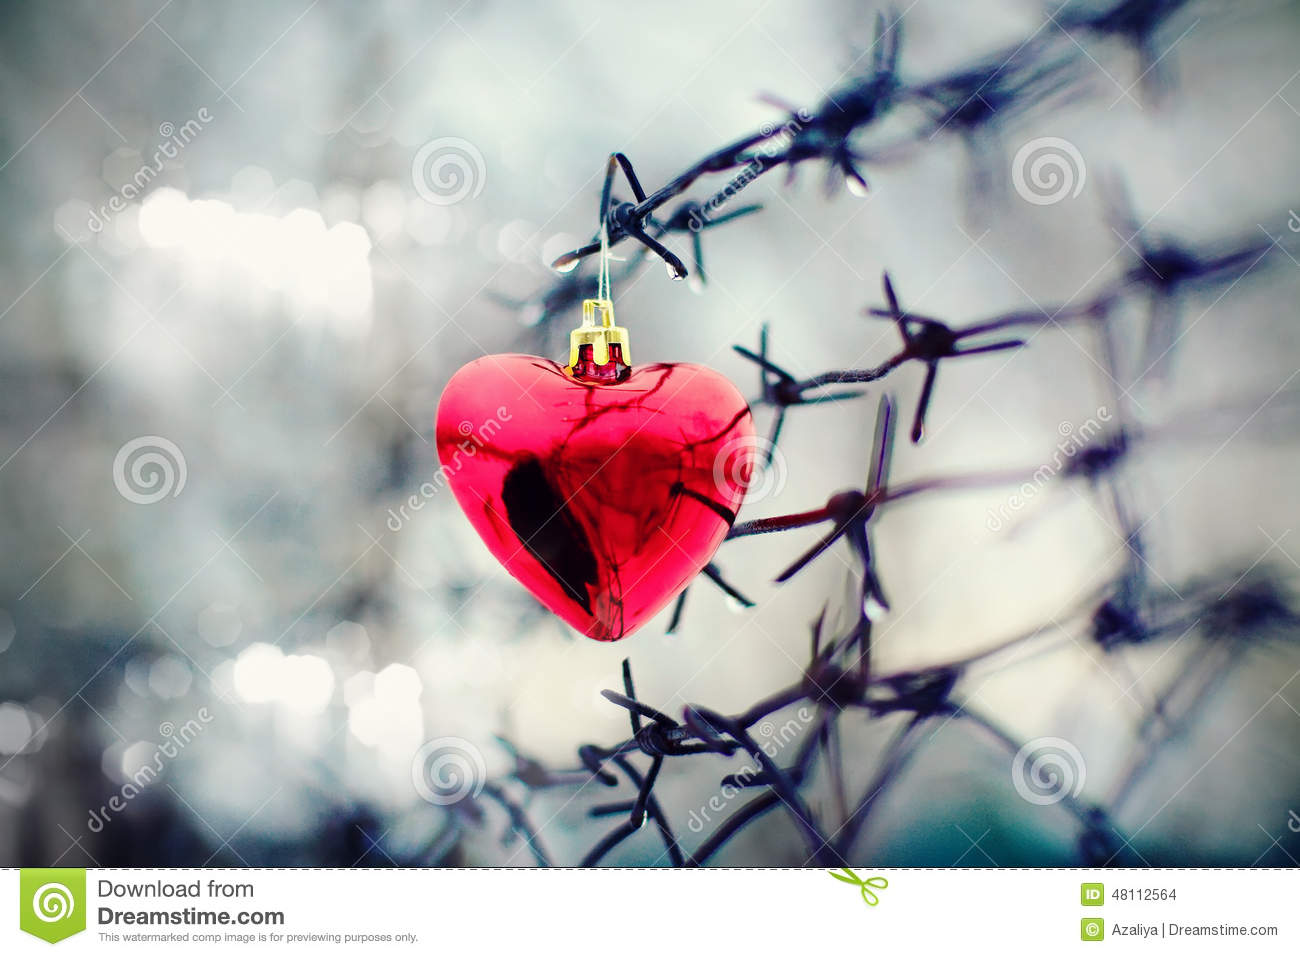 Heart and barbed wire